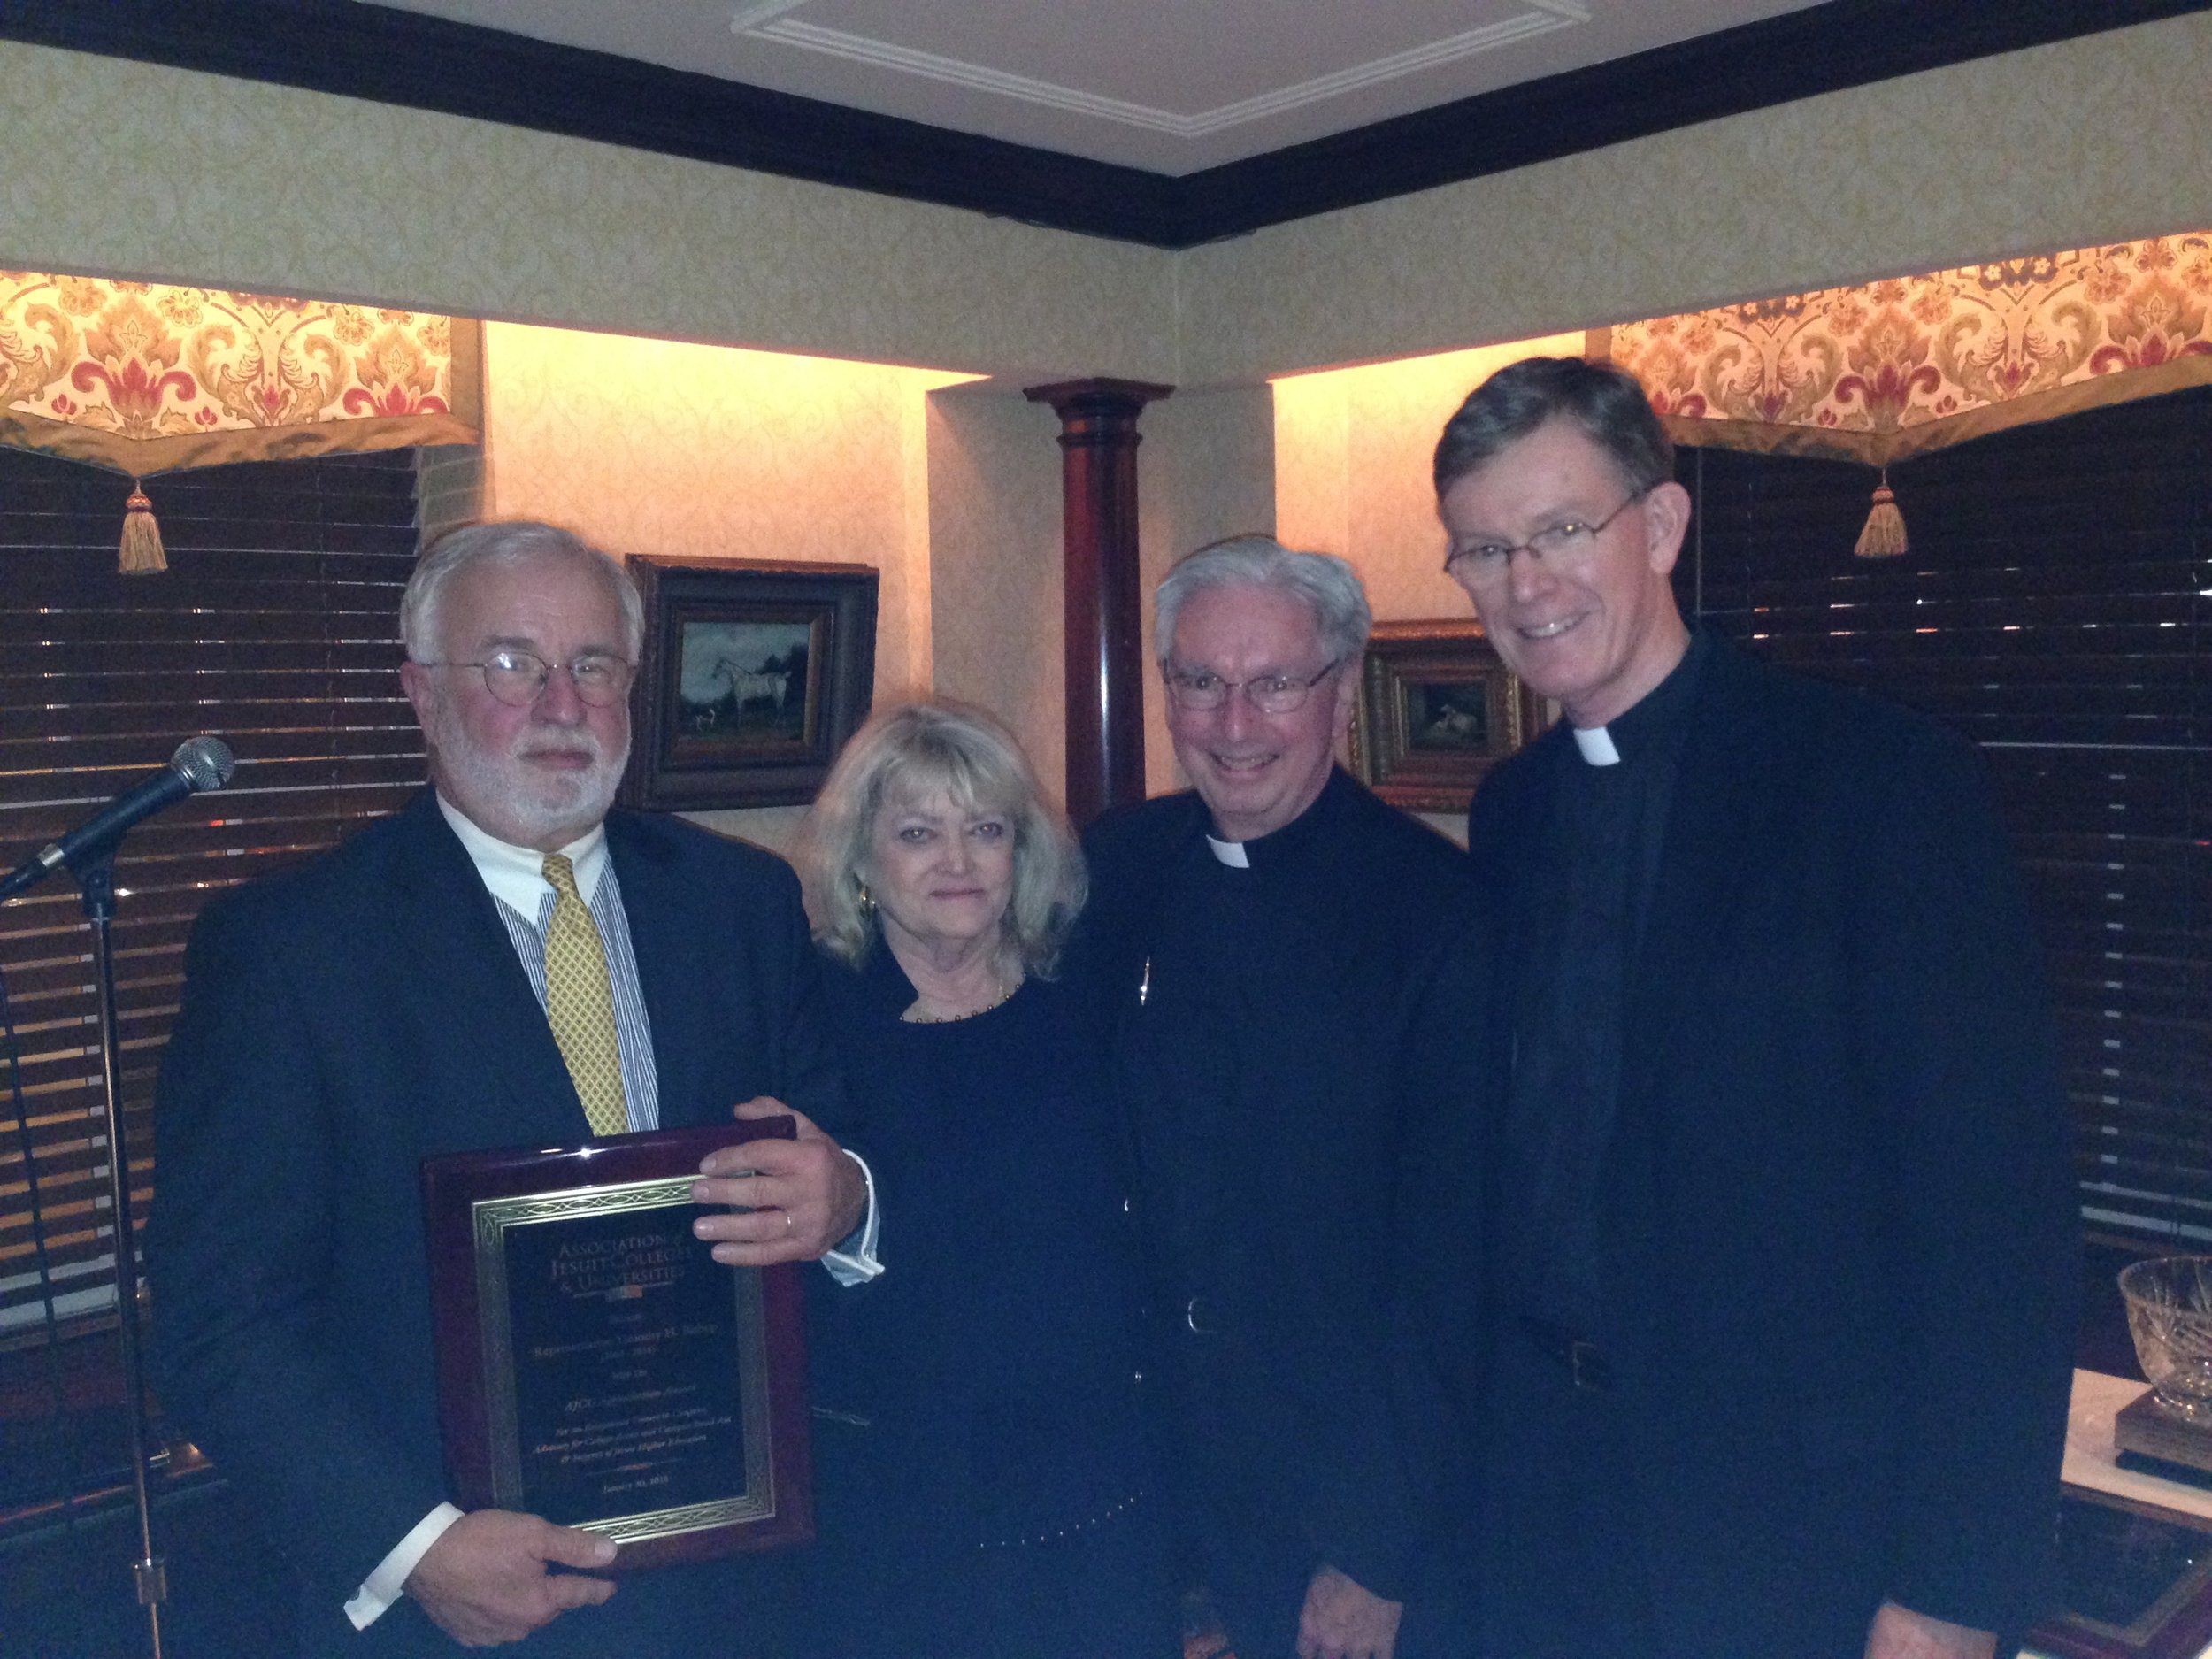 Cyndy with former Representative Tim Bishop, AJCU president, Rev. Michael J. Sheeran, S.J. and College of the Holy Cross president, Rev. Philip Boroughs, S.J., during the Winter 2015 AJCU Board Dinner